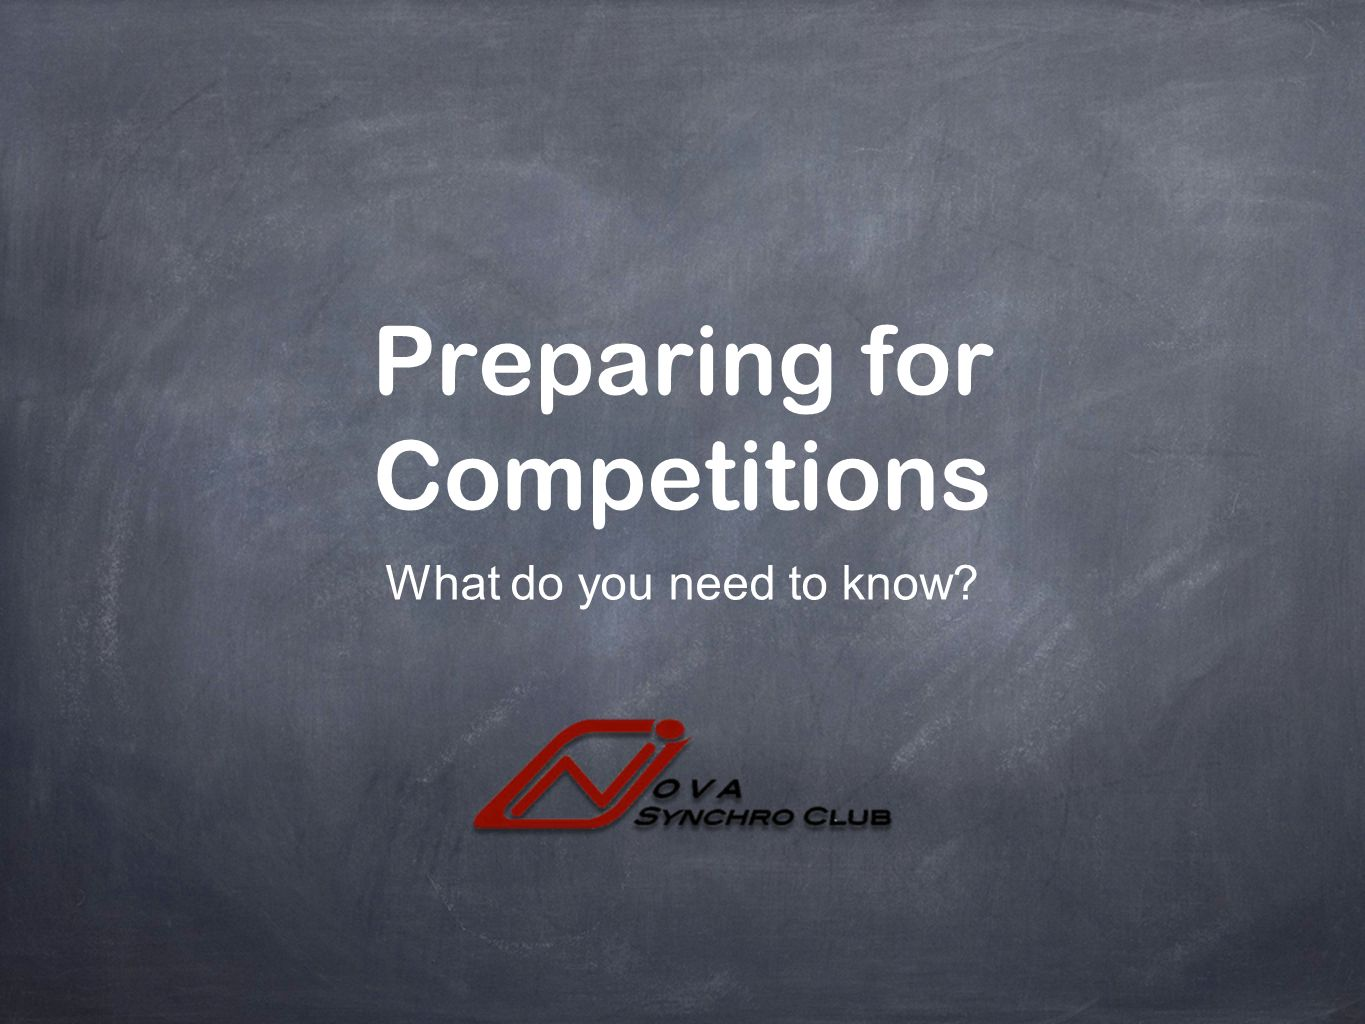 Preparing for Competitions